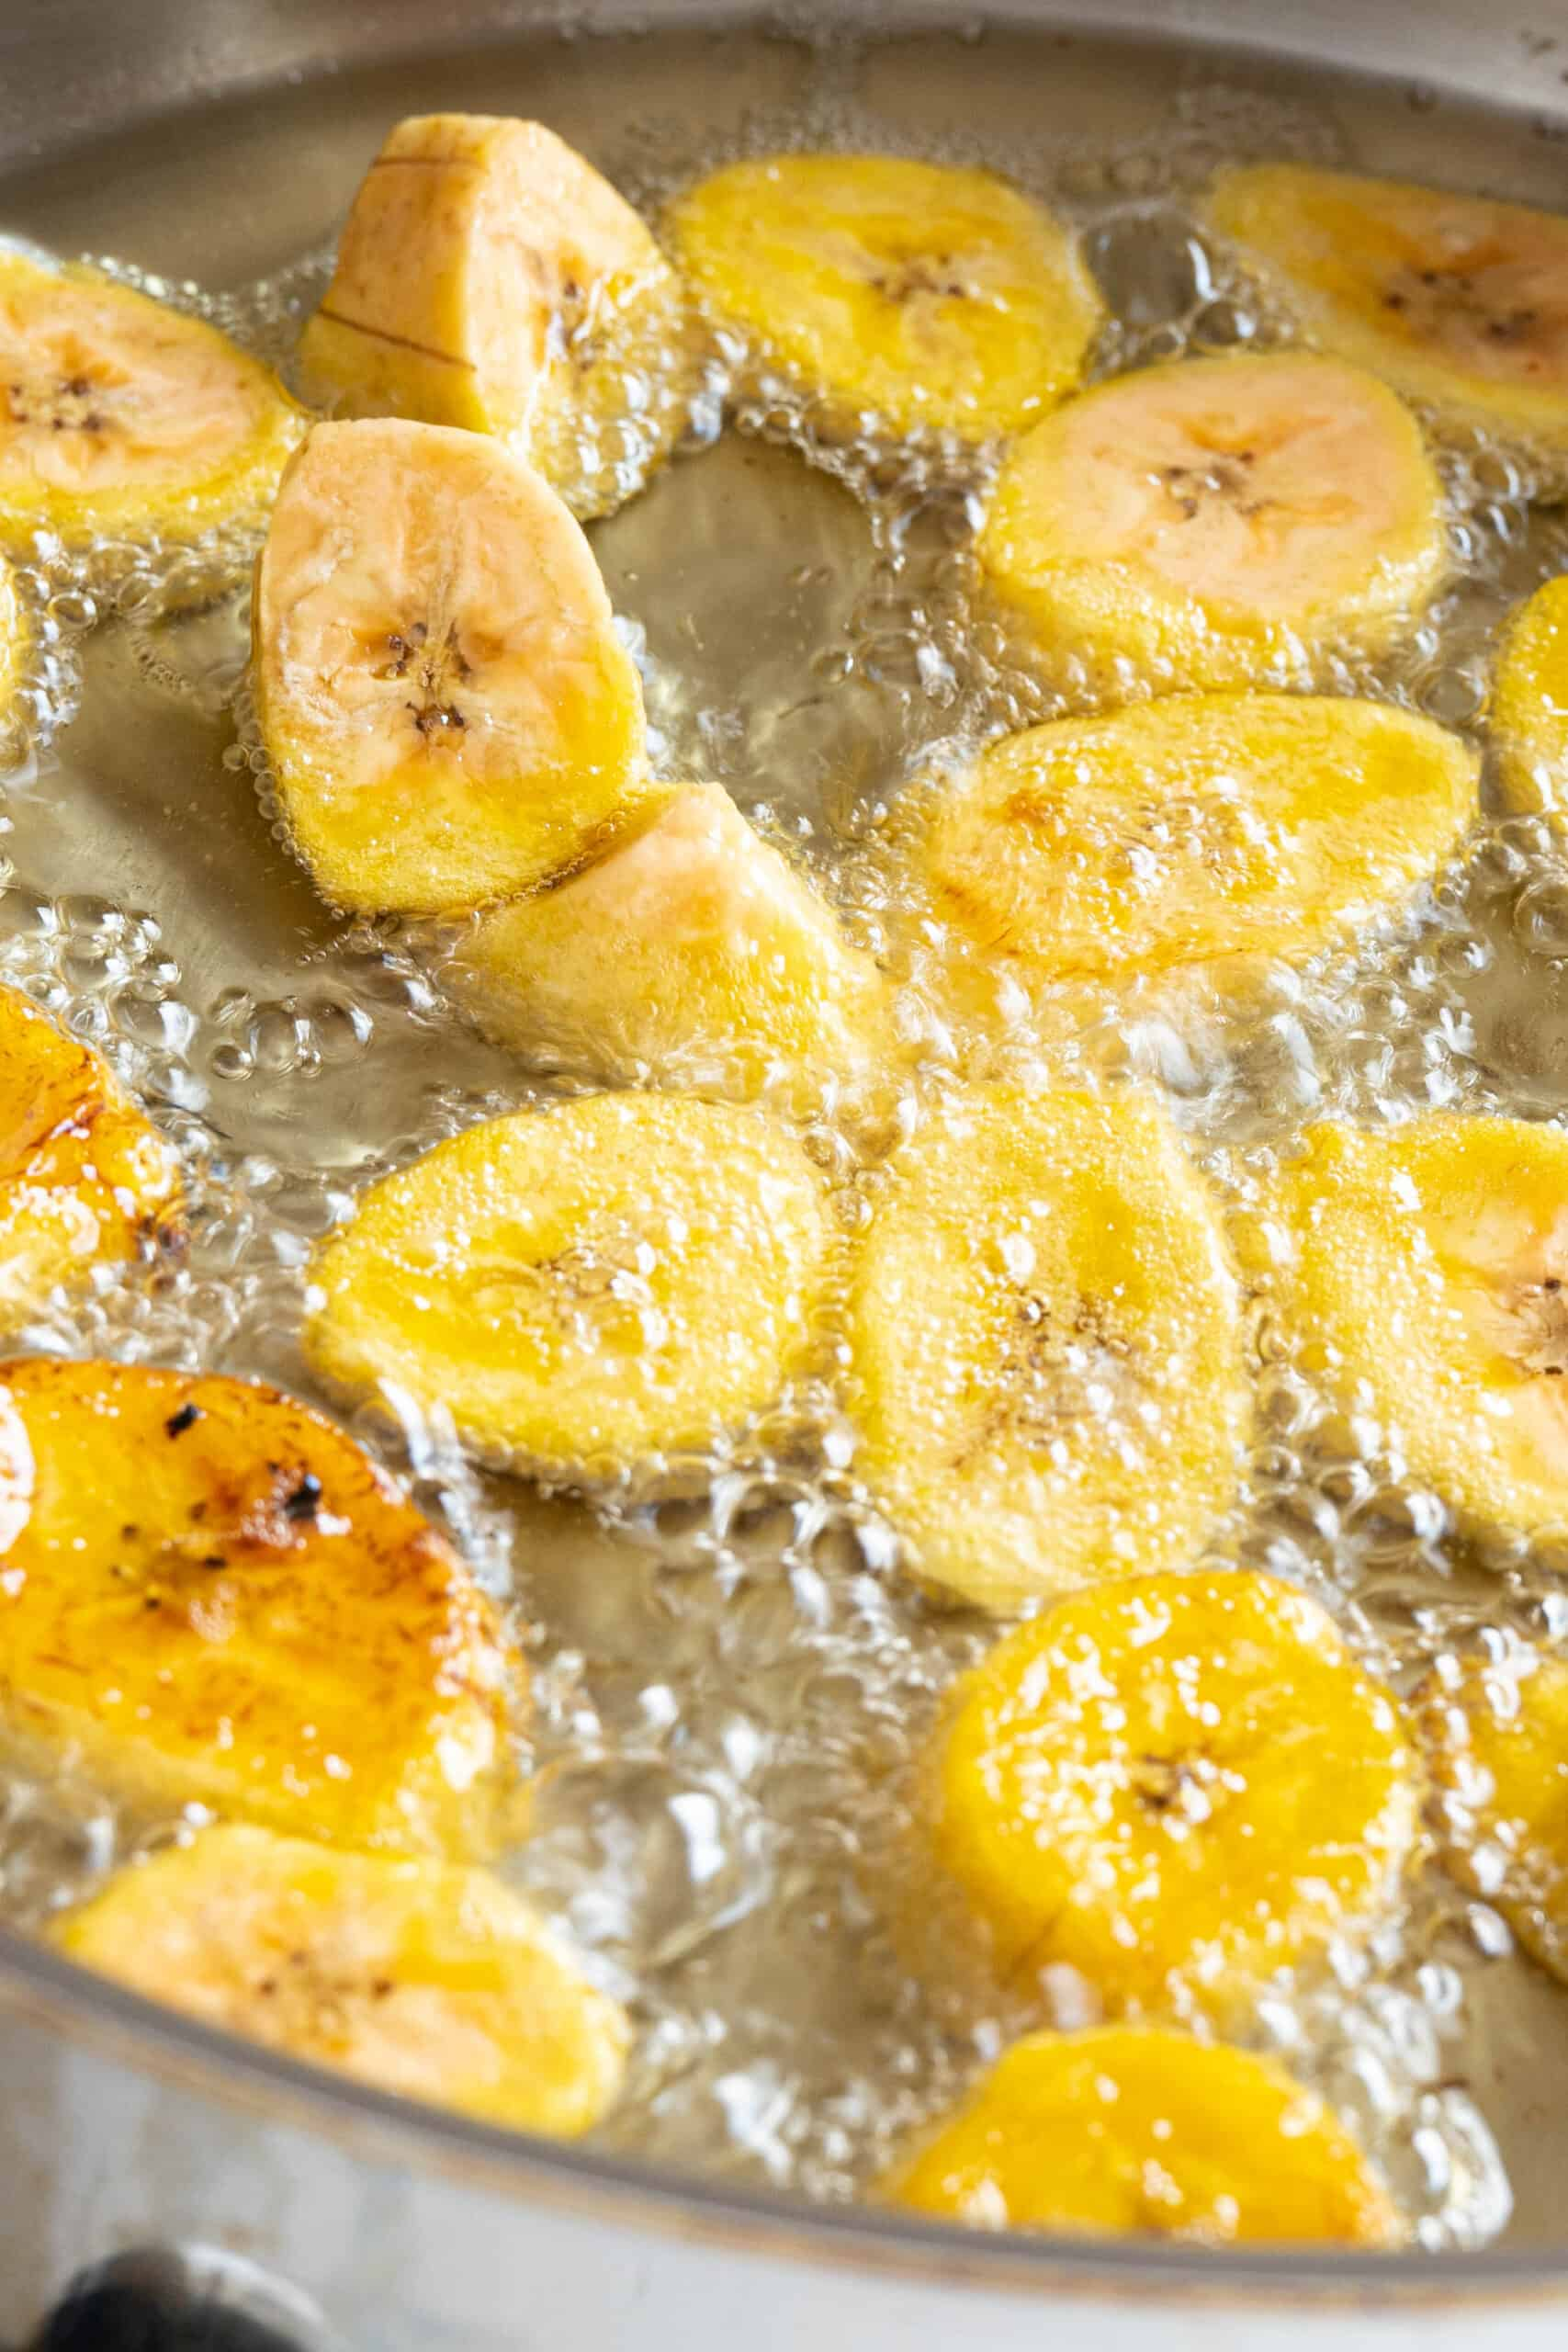 plantains frying in oil